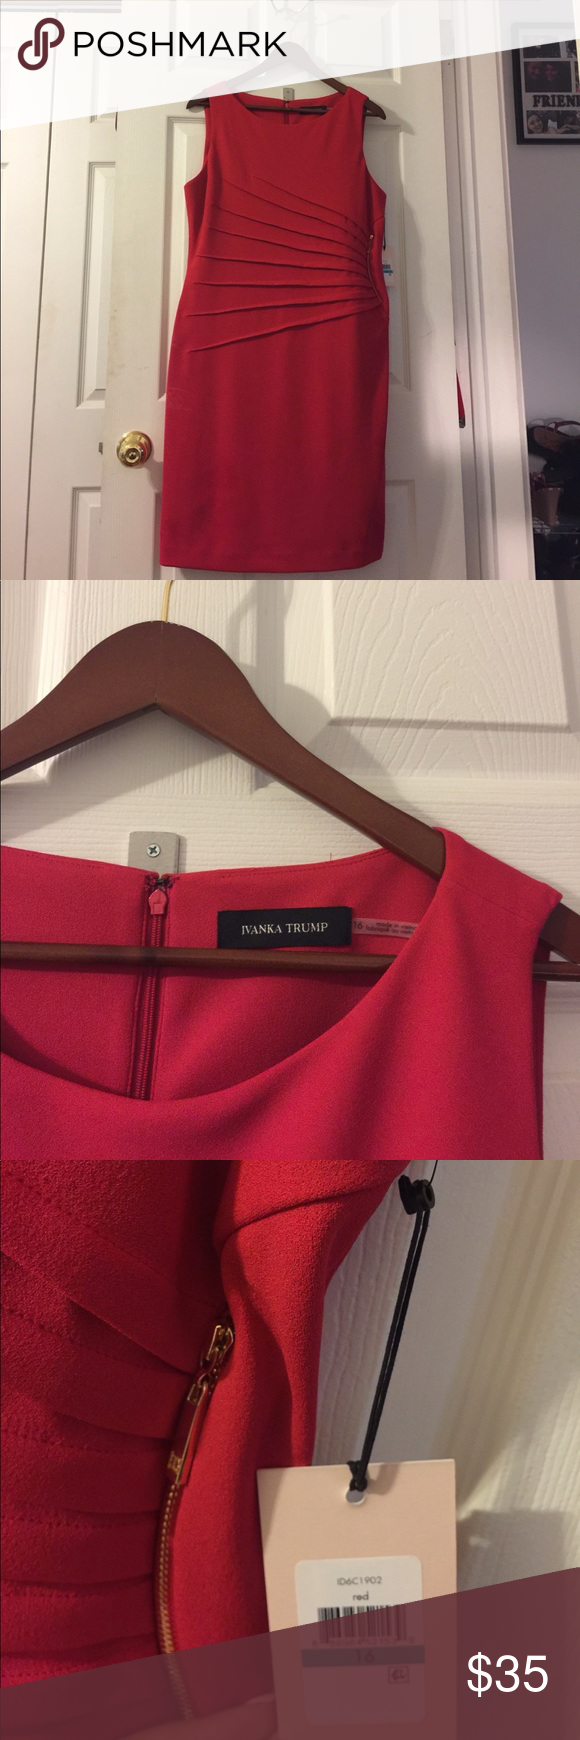 Ivanka Trump red bodycon formal zip sheeth dress Ivanka Trump red bodycon formal zip sheeth dress. Brand-new with tags, NWT formal red zipper dress with gold hardware. Perfect for for formal event, wedding guest or girls night out. Gorgeous💋💄, slimming and form fitting dress. I love reasonable offers, bundle and save! Ivanka Trump Dresses